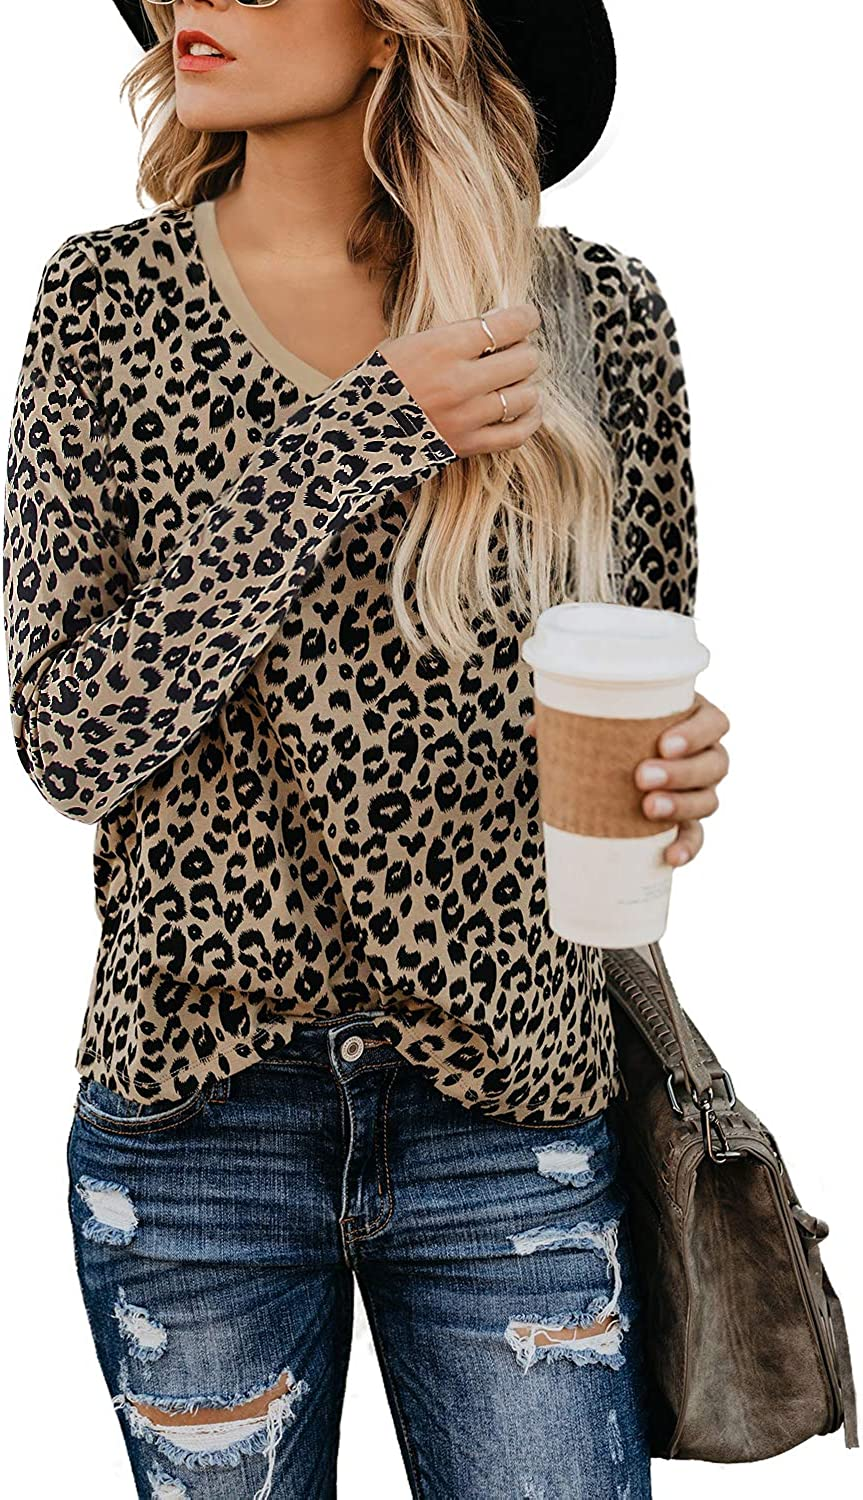 BMJL Women's Casual Leopard Print Tops Long Sleeve T Shirt Cute Blouse Graphic Tees